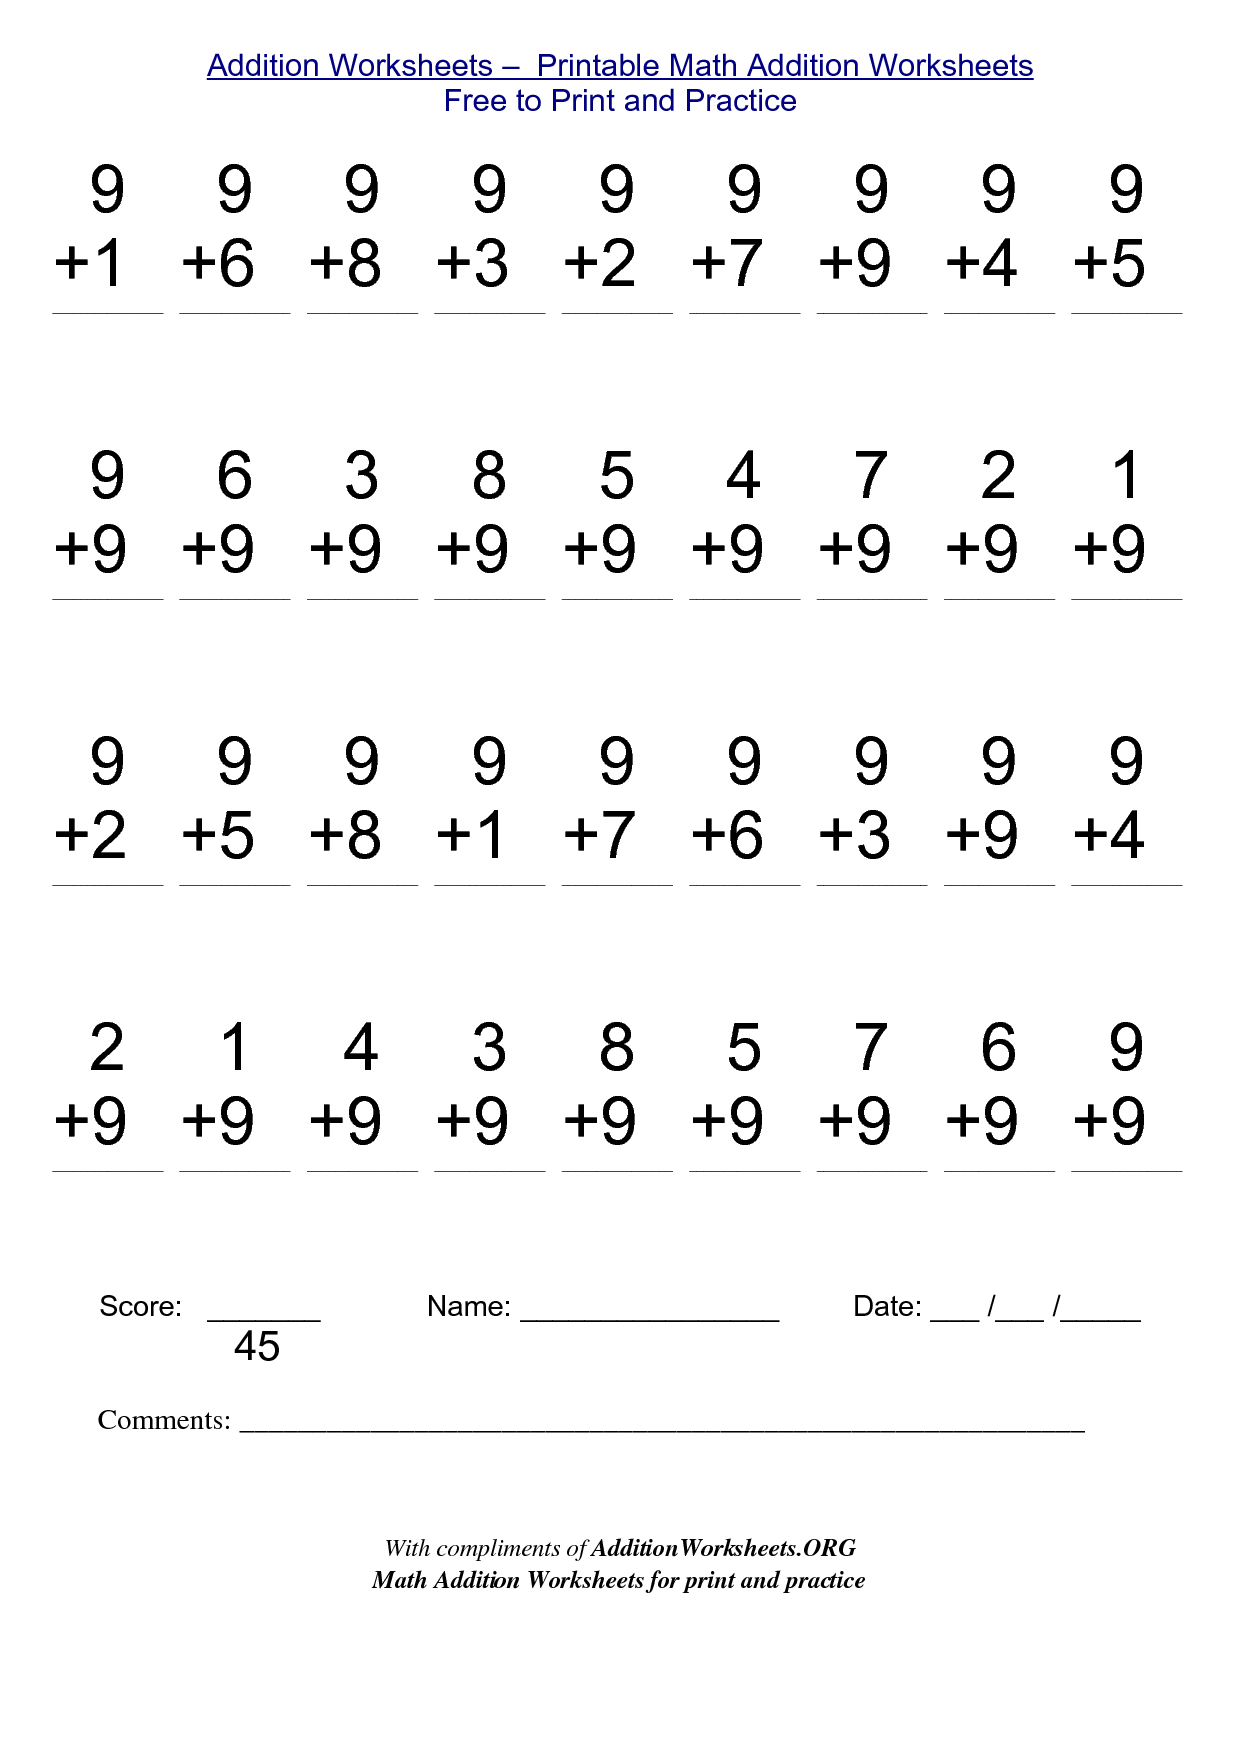 Free worksheet 100 addition facts 1 20 for educators pinterest 2nd grade stuff to print addition worksheets printable math addition worksheets free to print robcynllc Images